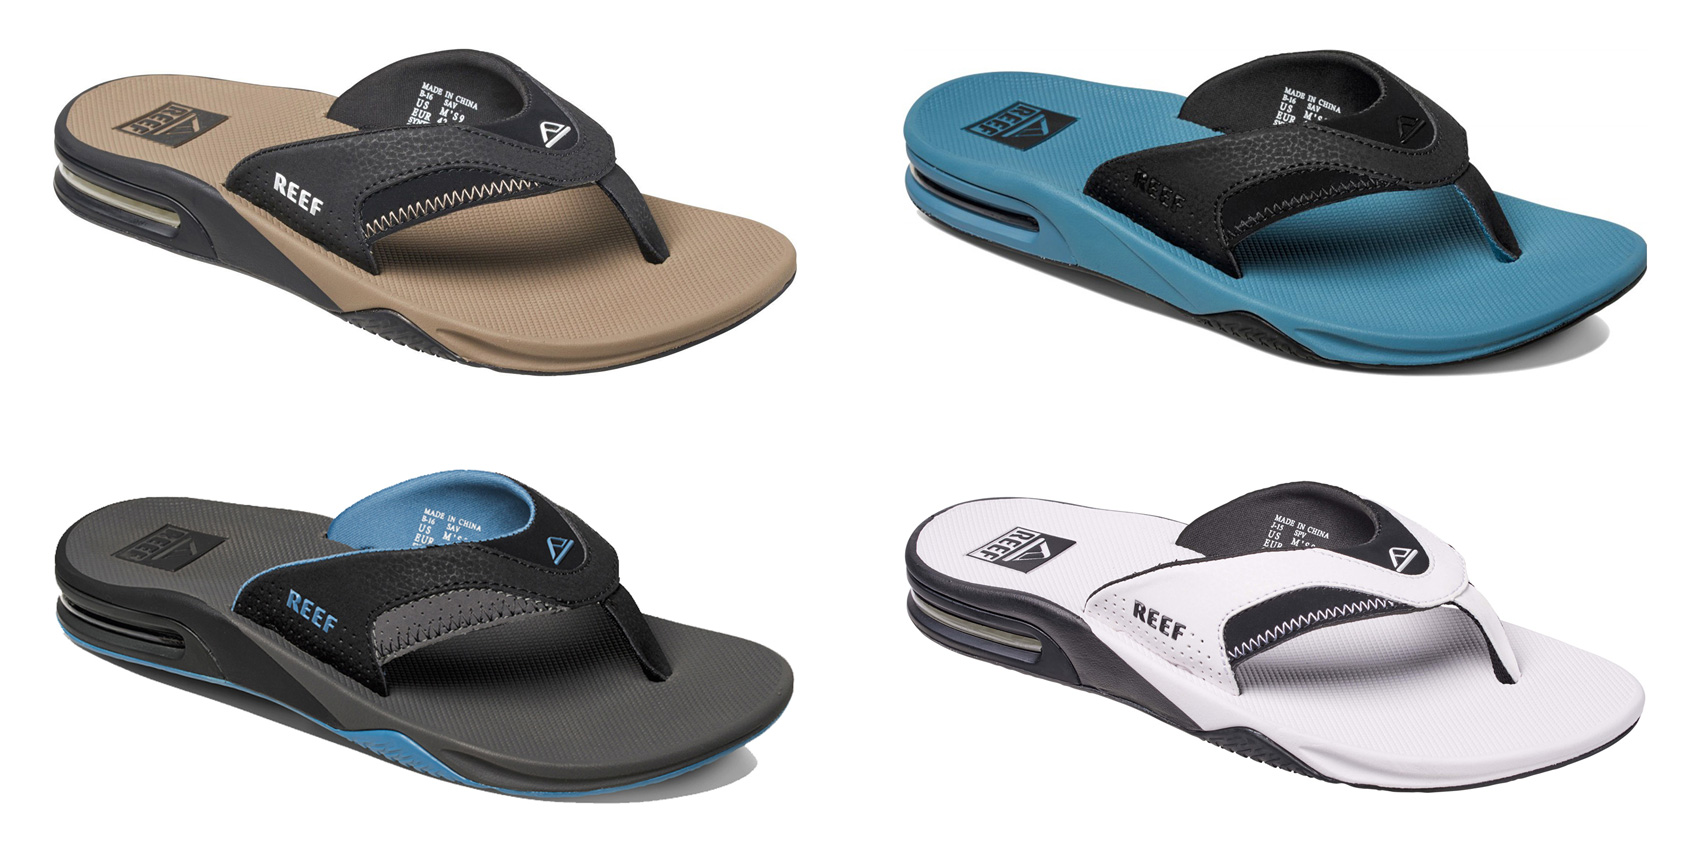 8c9f51612 10 Best Reef Sandals Reviewed   Rated in 2019